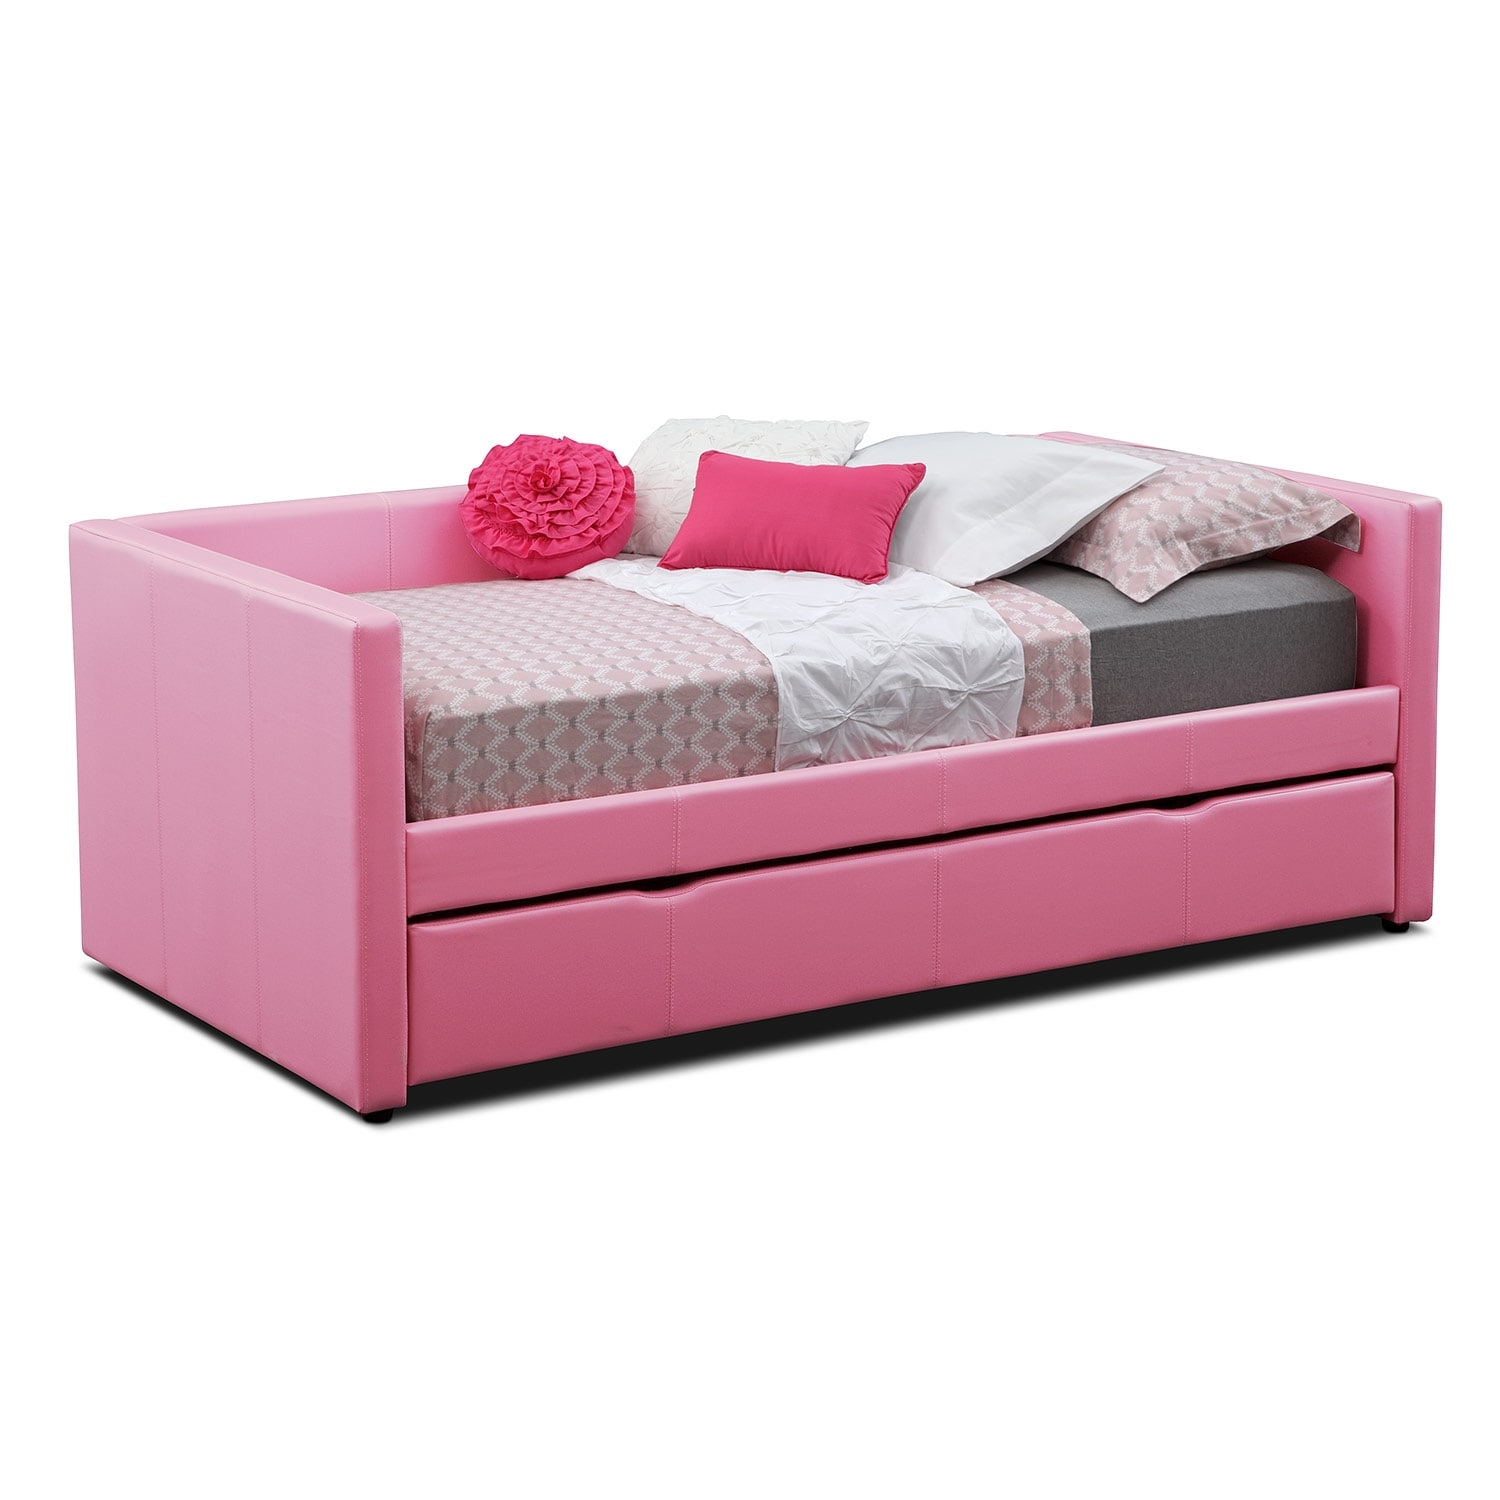 Carey Pink Twin Daybed with Trundle